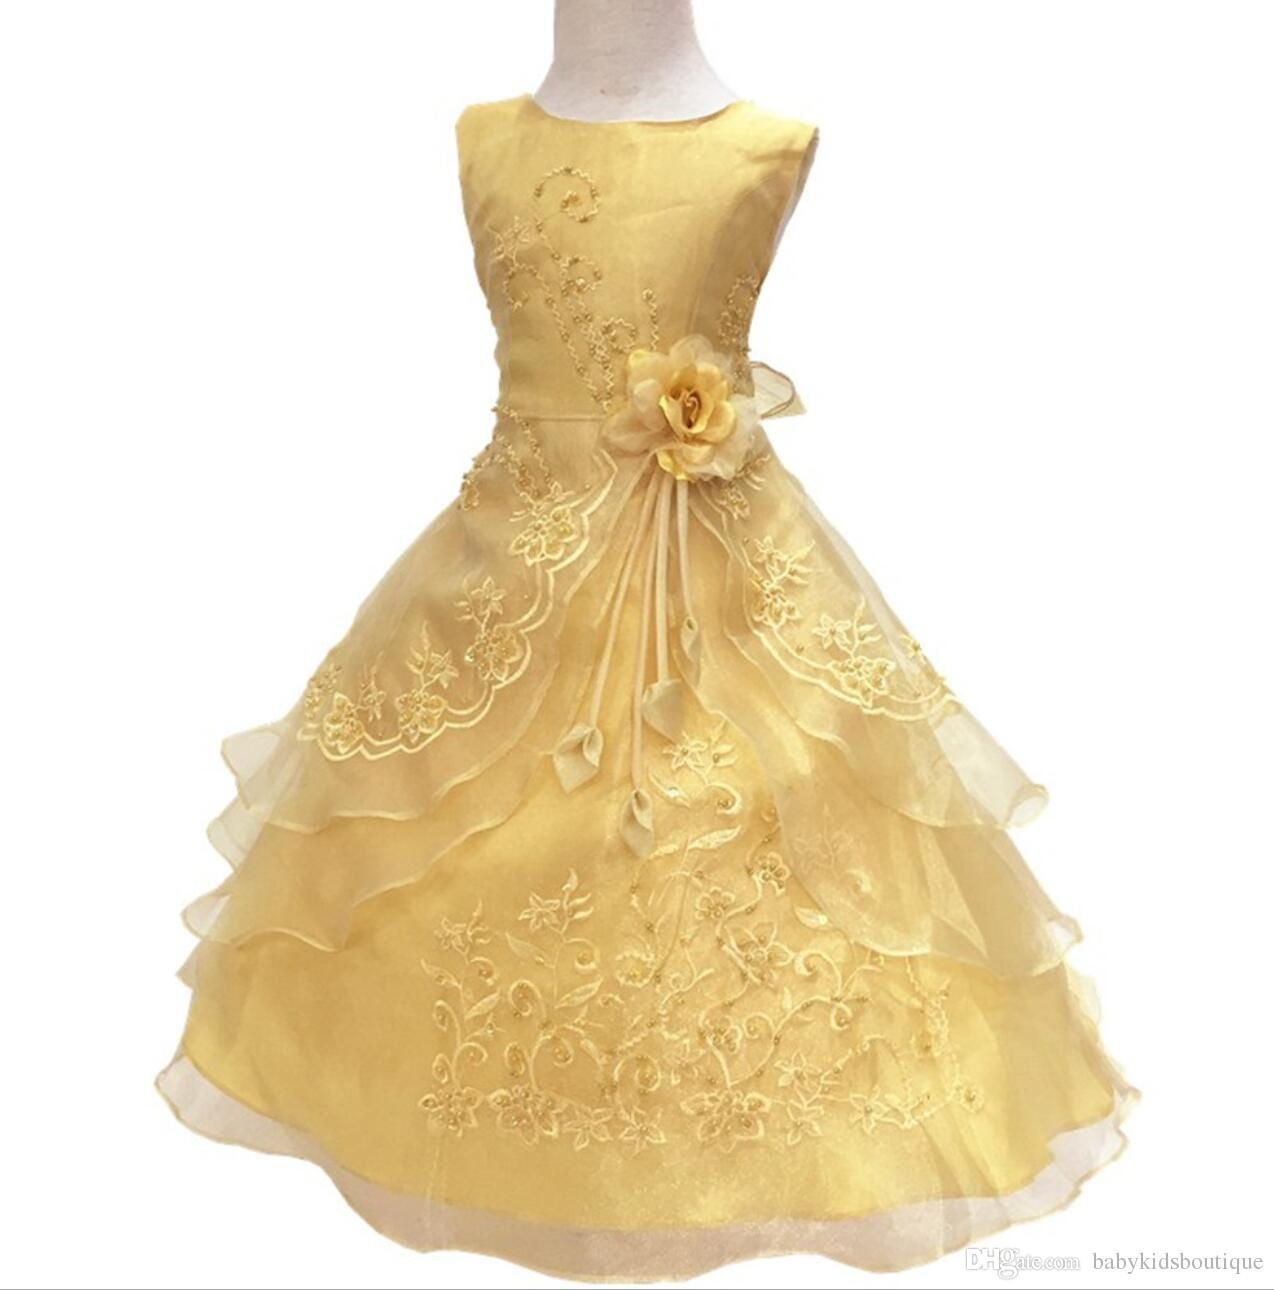 c384db822f 2019 Baby Girls Party Dress With Hoop Inside Kids Embroidered Flower Girl  Wedding Communion Princess Graduation Gown Formal Children Clothes From .